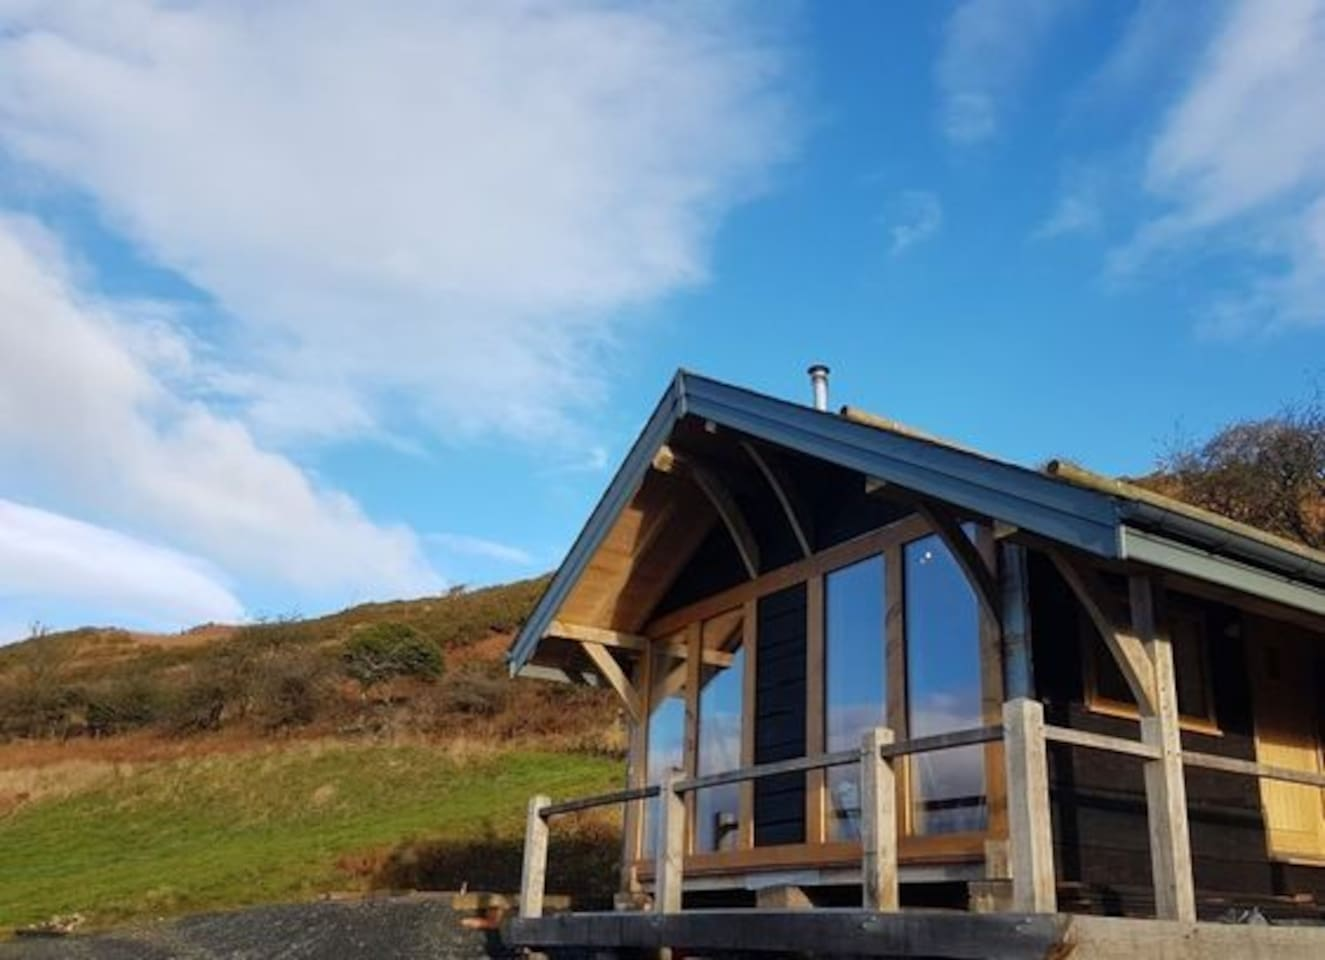 Blackberry Landing - Cabins for Rent in Newland, England, United Kingdom